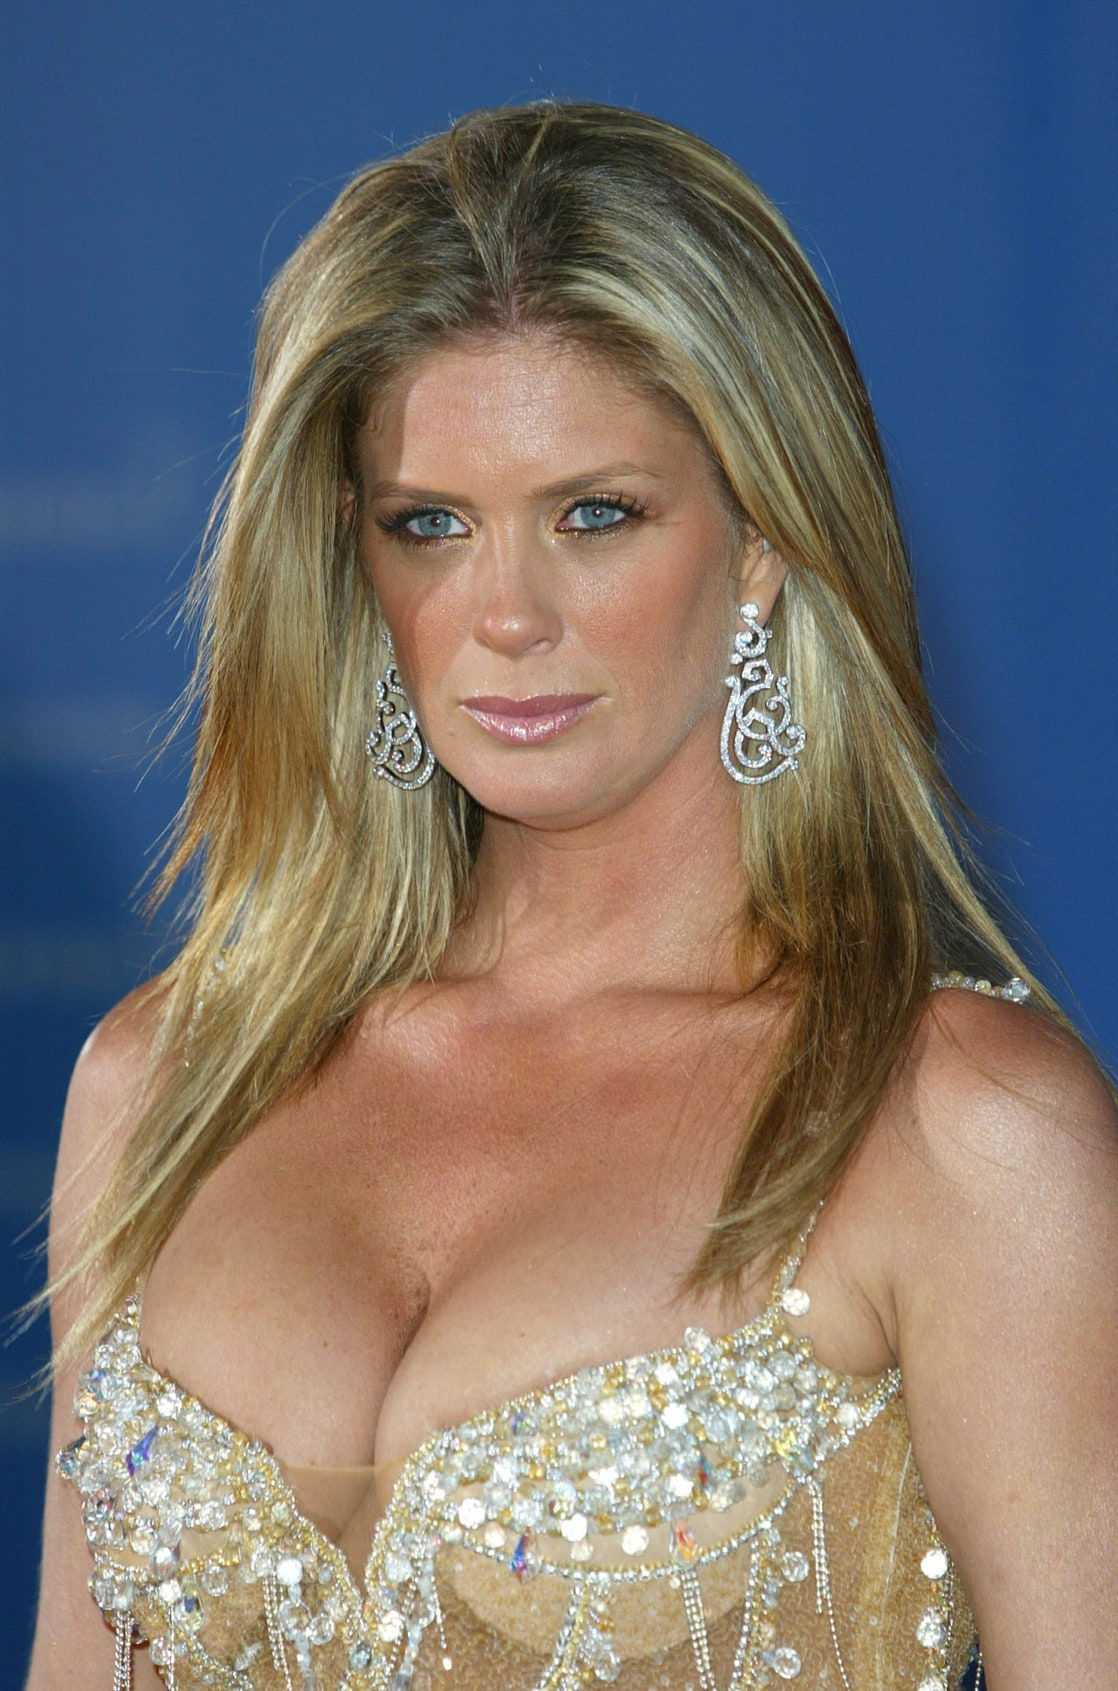 Rachel Hunter nude (43 photos), Topless, Cleavage, Instagram, bra 2017